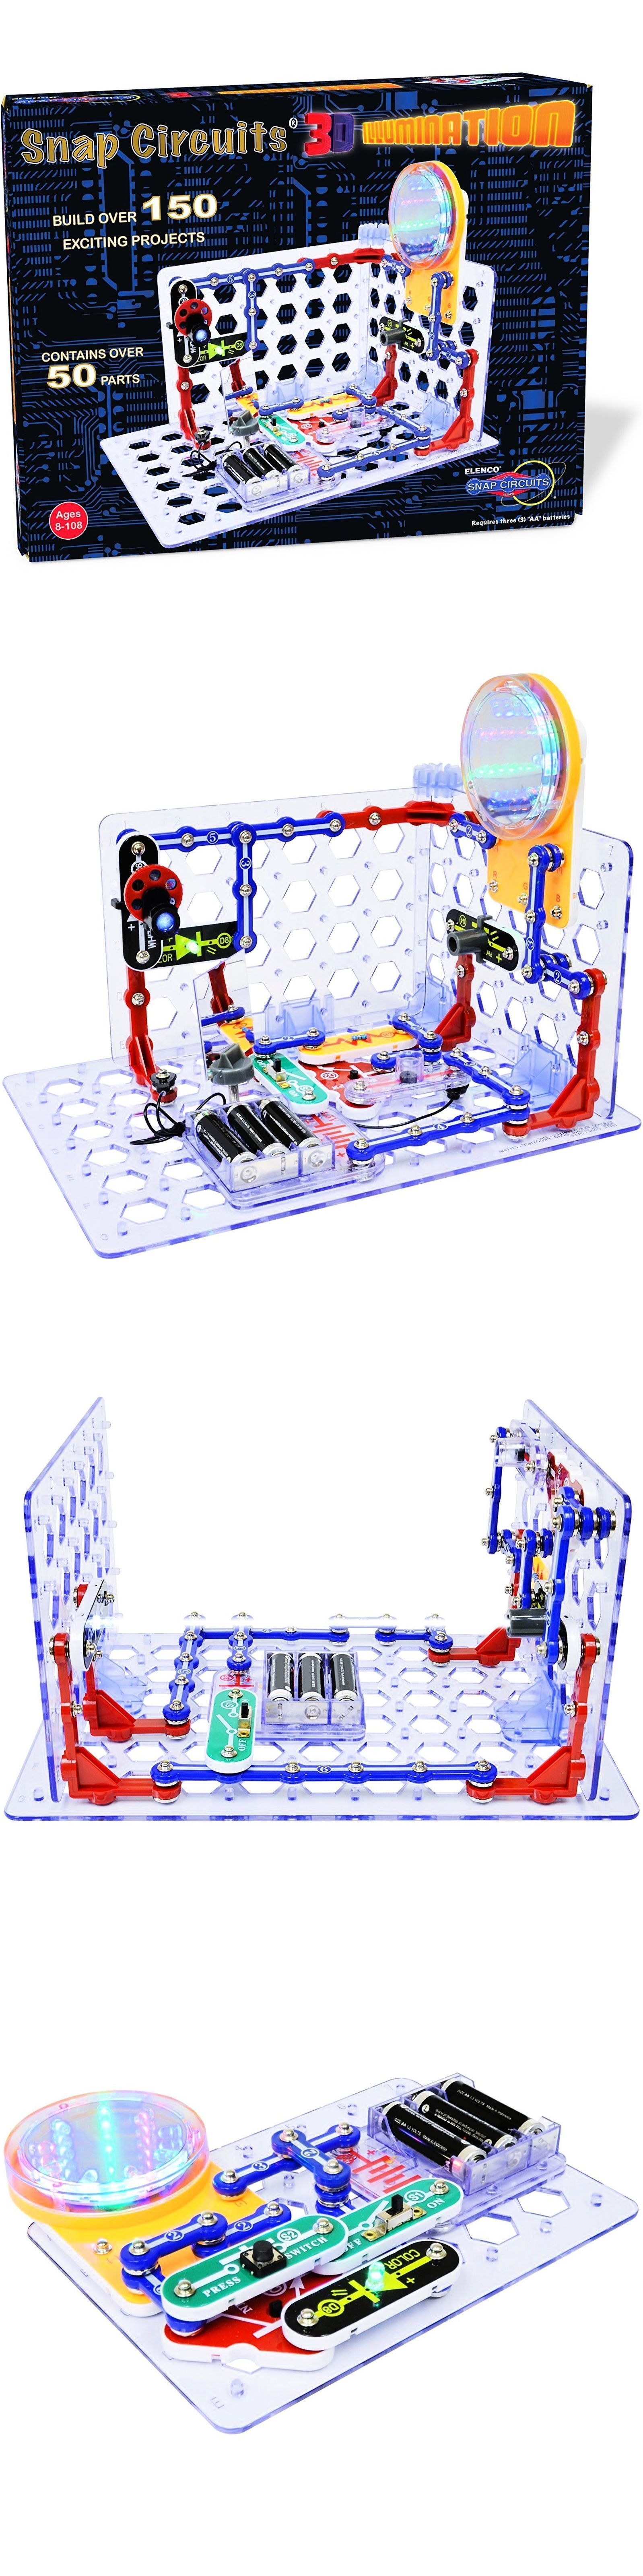 Electronics And Electricity 158698 Snap Circuits 3d Illumination Rc Rover Discovery Kit New For 2016